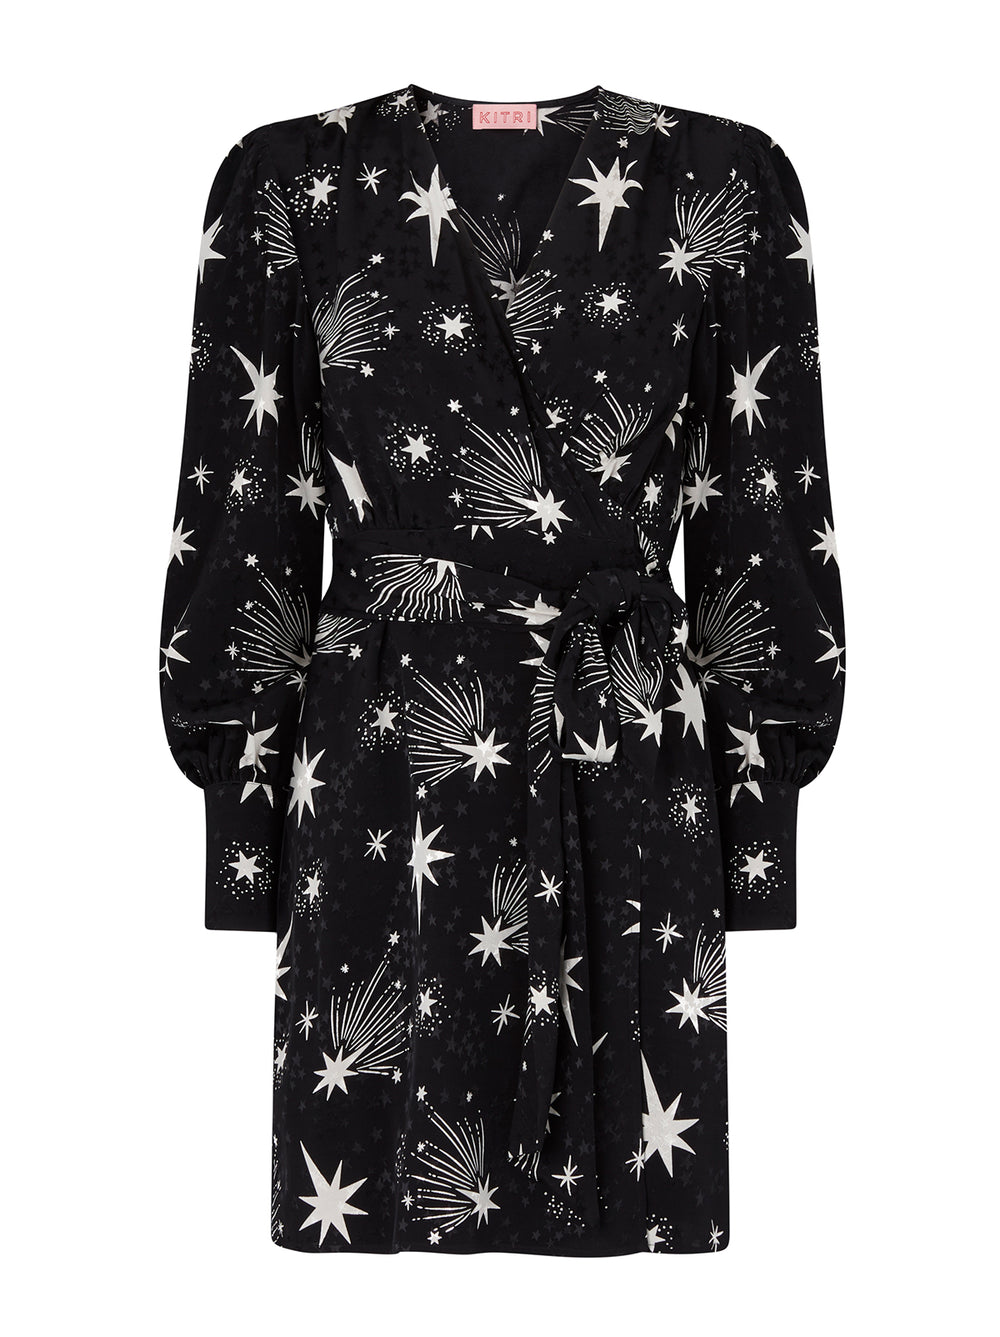 Rebecca Black Star Print Mini Dress by KITRI Studio